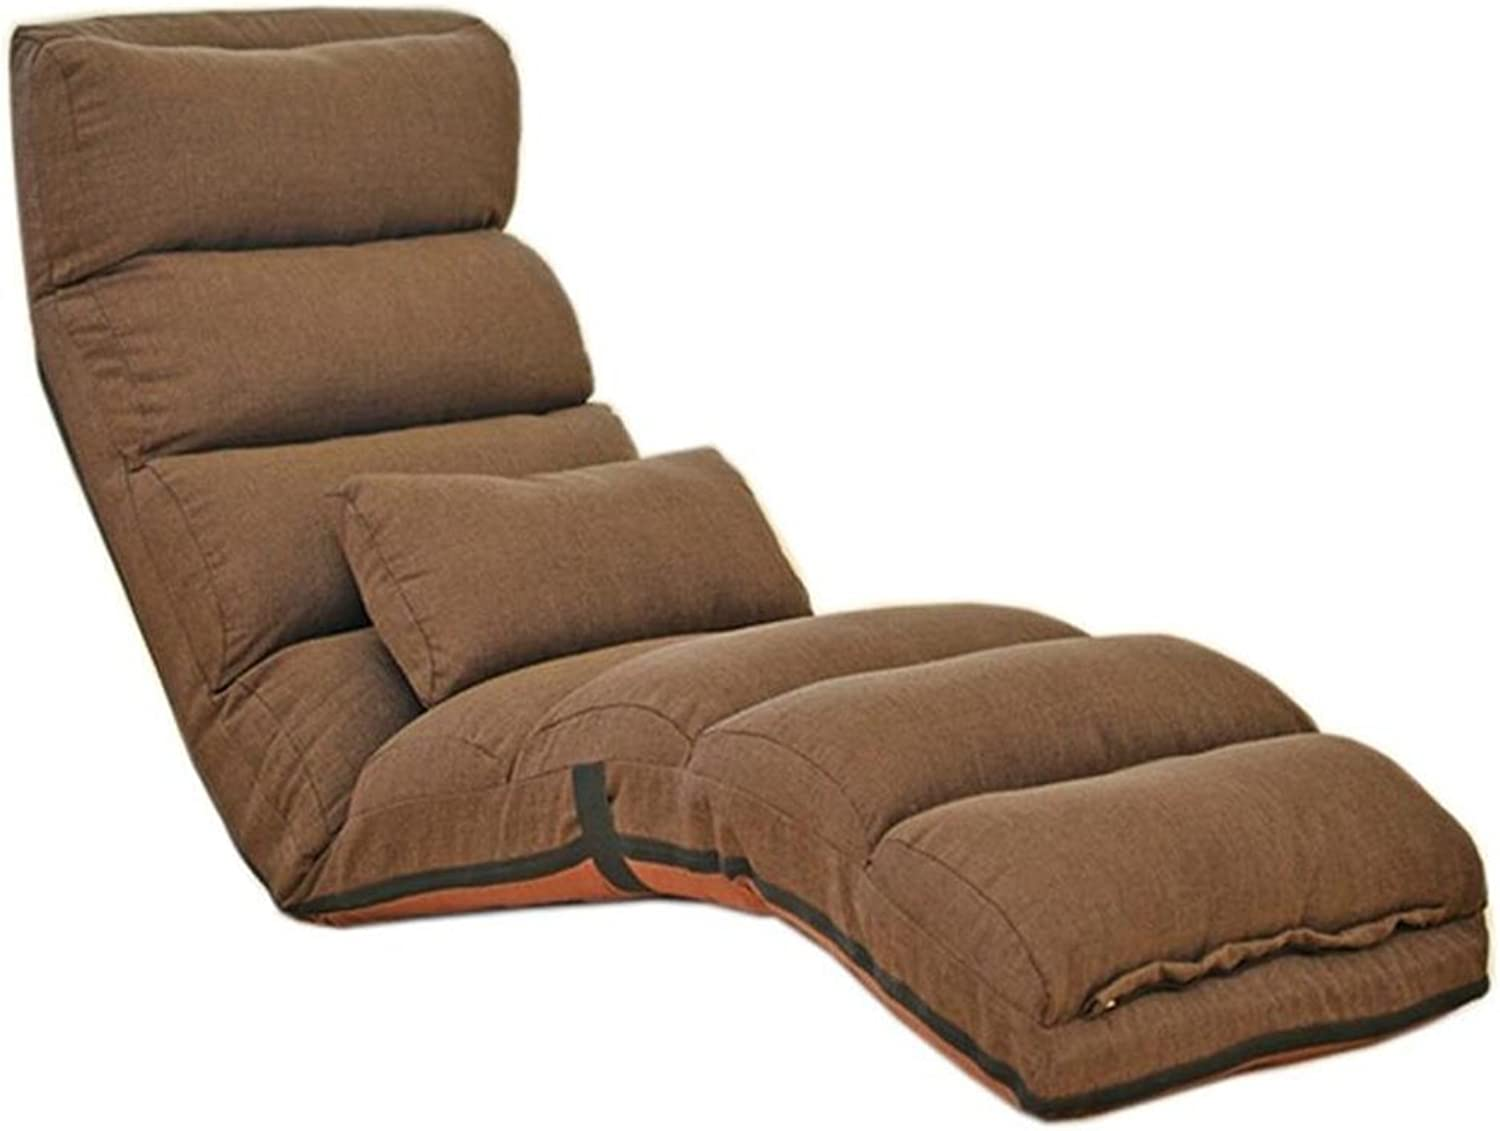 Recliners Lazy Sofa Home Recliner Sofa Living Room Bedroom Floor Sofa Go Out to Carry Folding Sofa Single Leisure Sofa Stylish Tatami Backrest Sofa (color   Brown, Size   175cm)